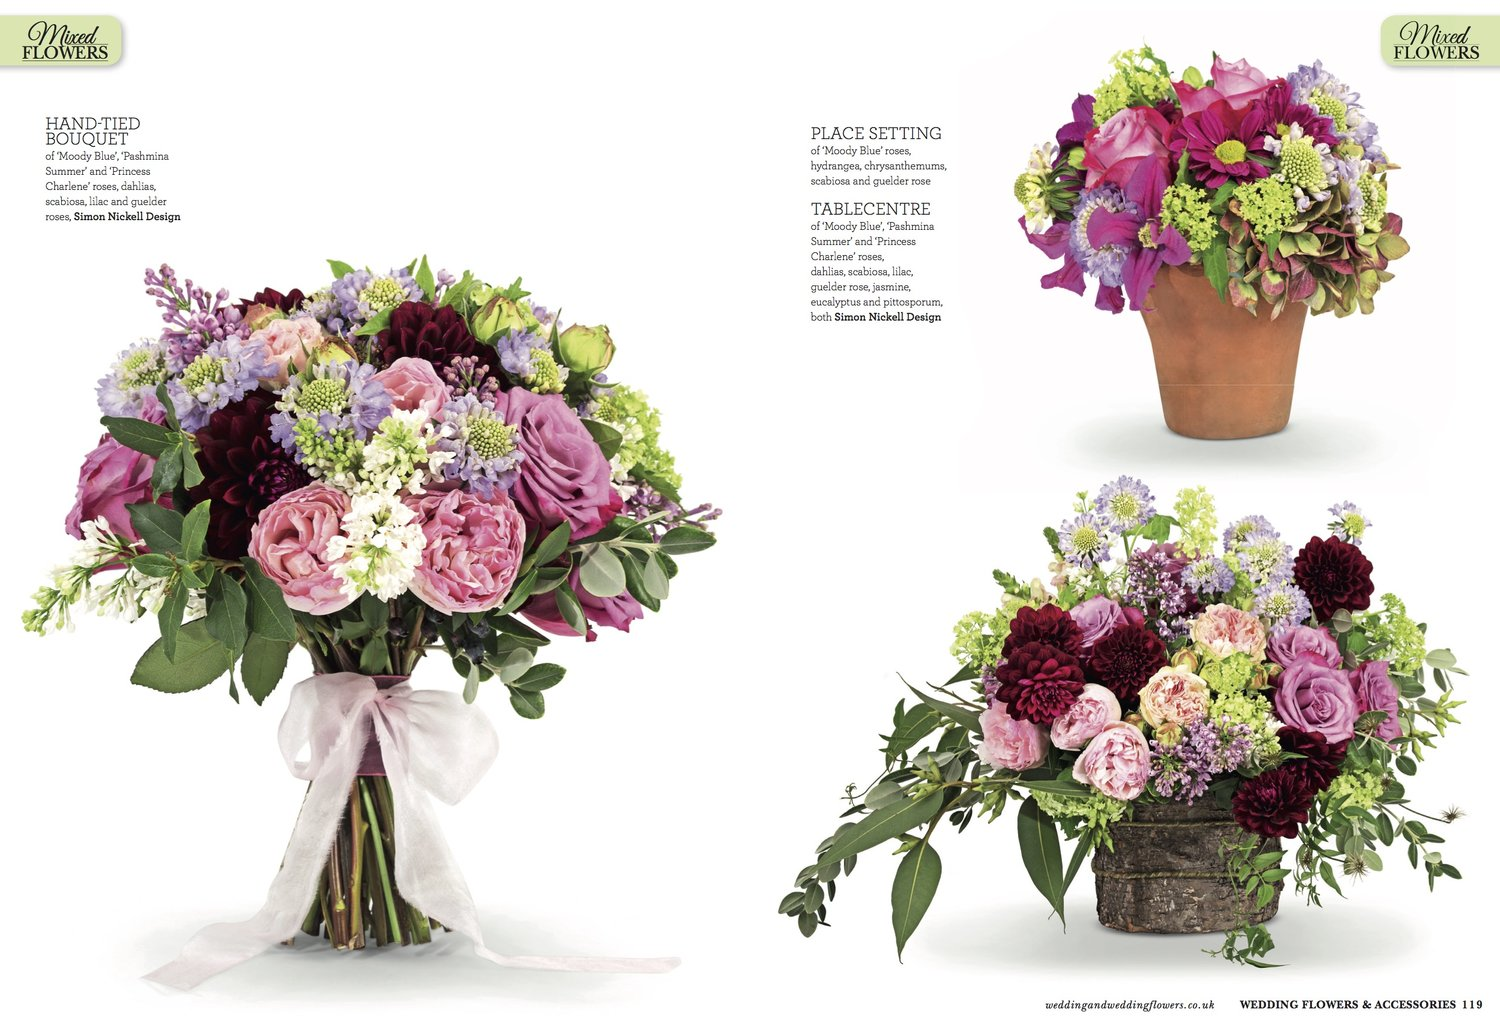 Floral trends for 2017 simon nickell design see that my bouquet was chosen for the front cover its a pity that magazines dont came with scratch and sniff because the scent from these gorgeous izmirmasajfo